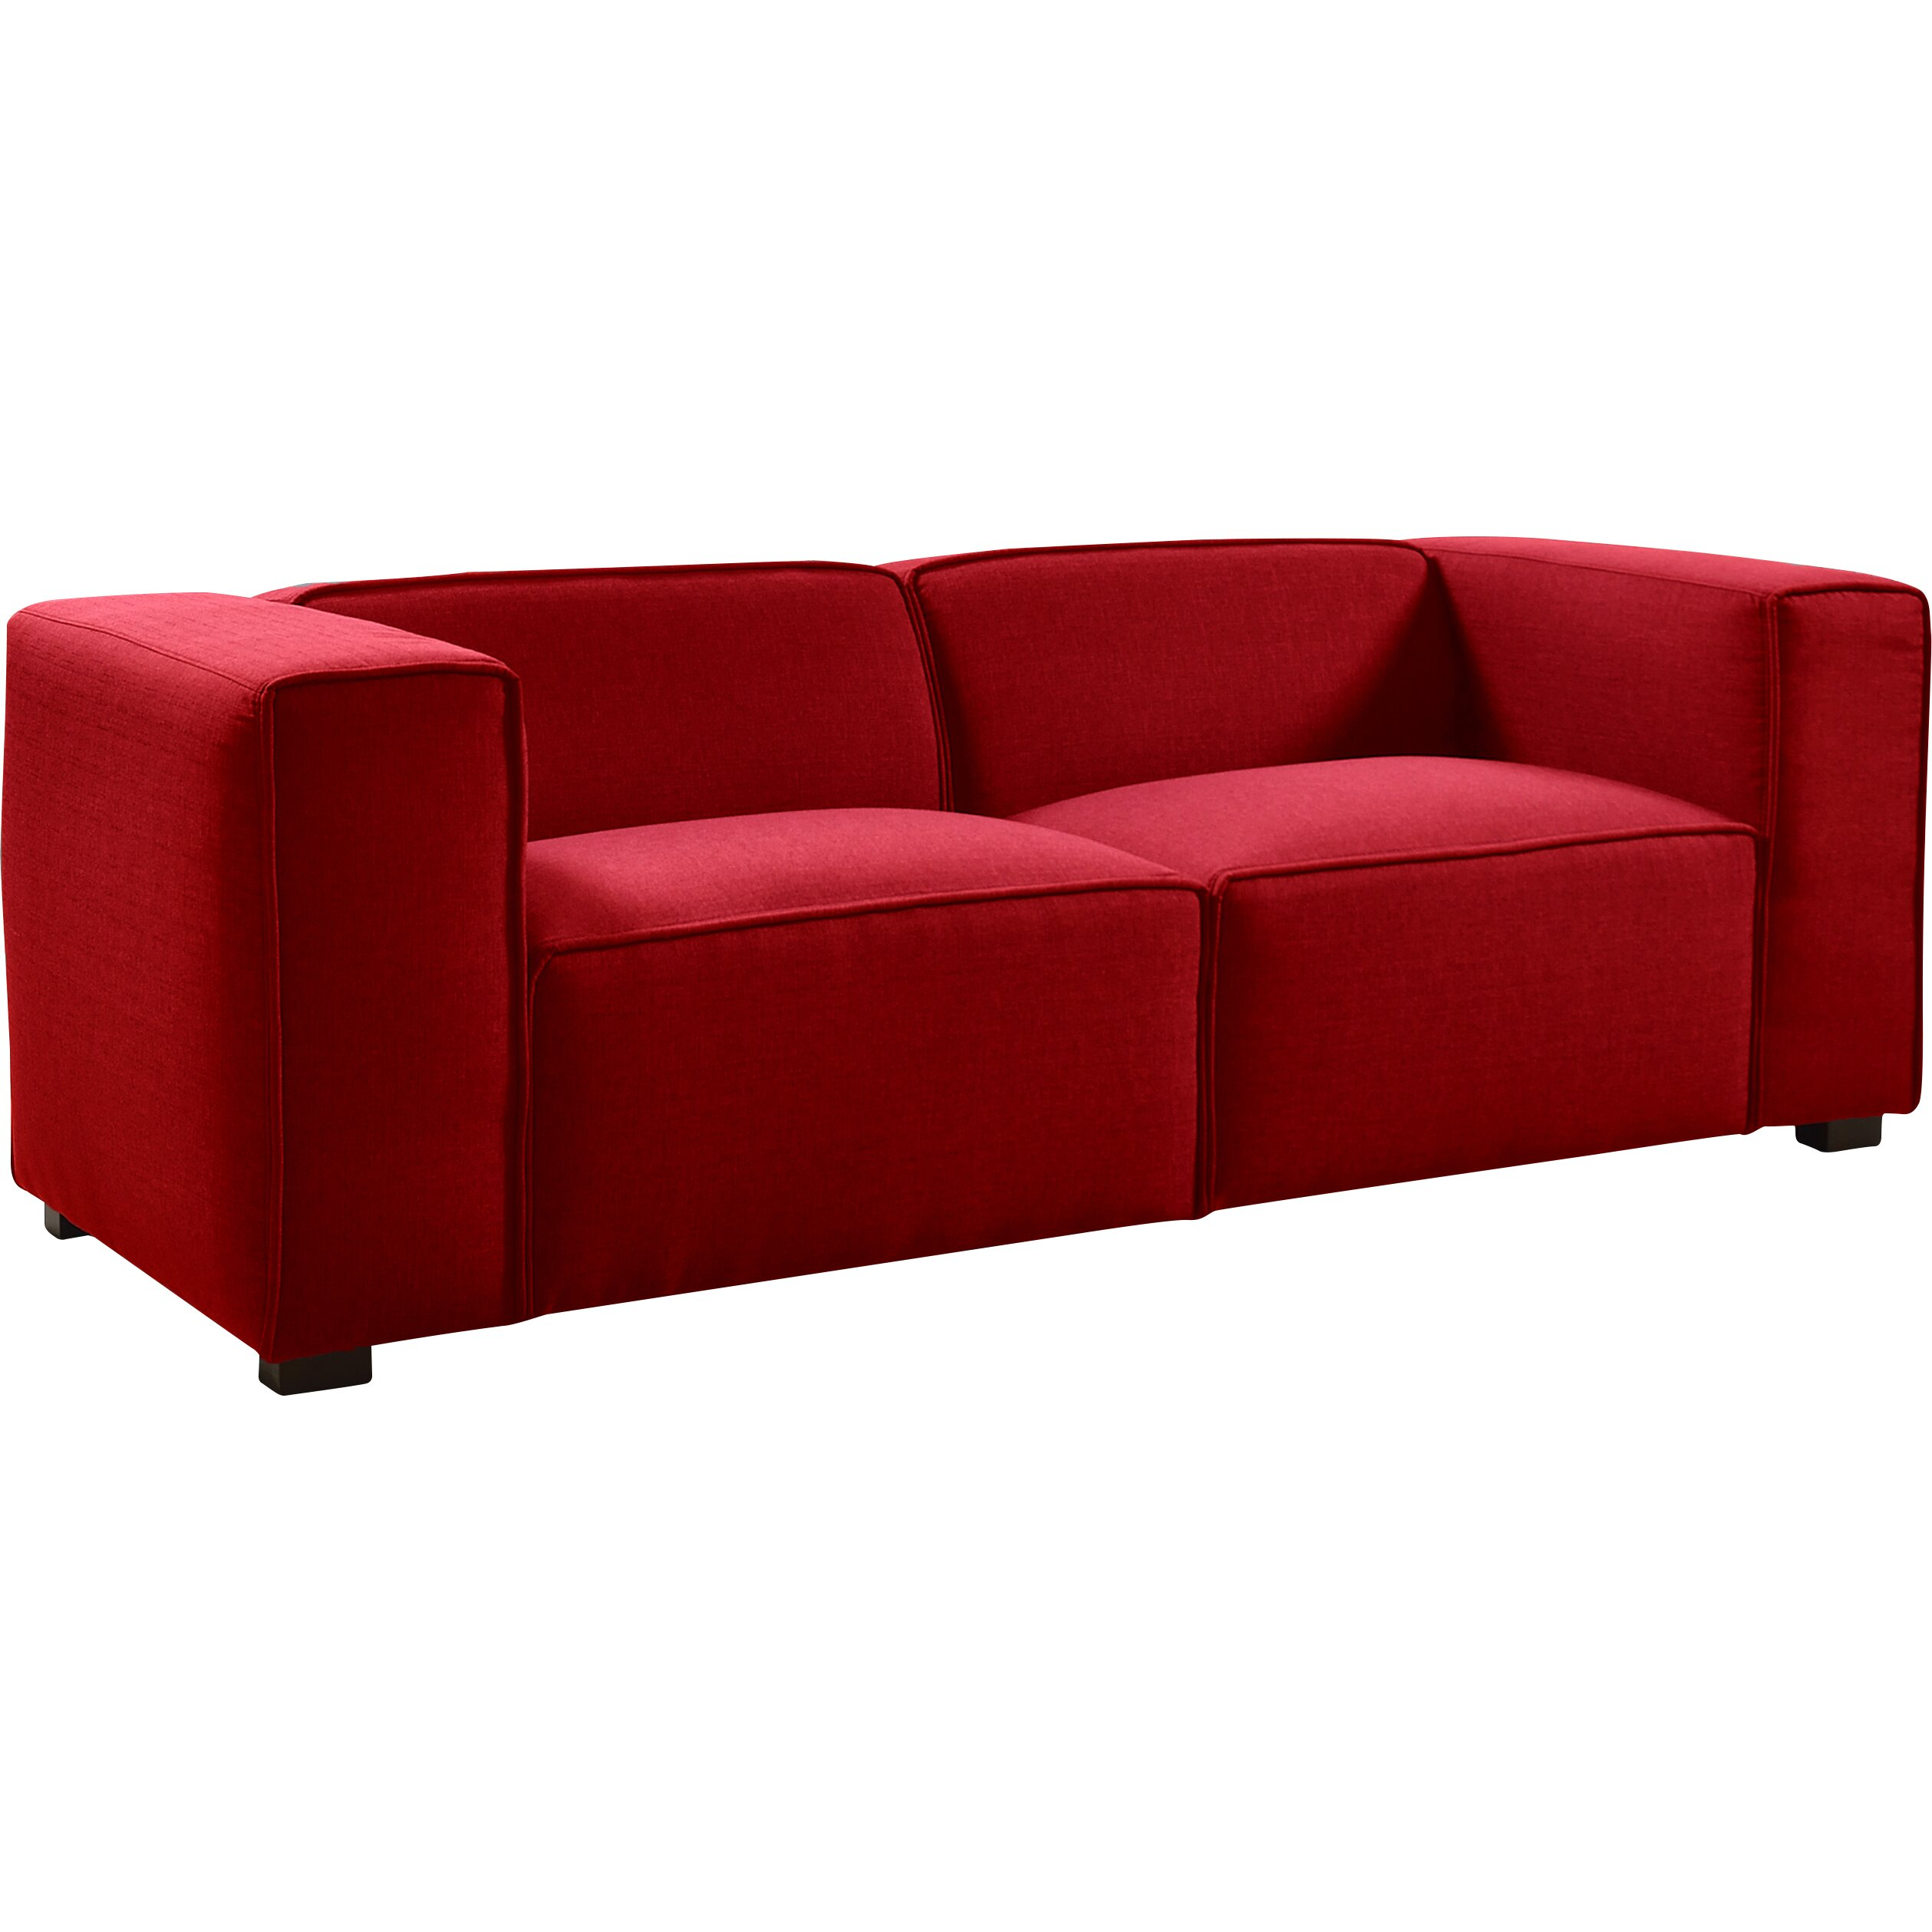 Overstuffed Sofa Wayfair